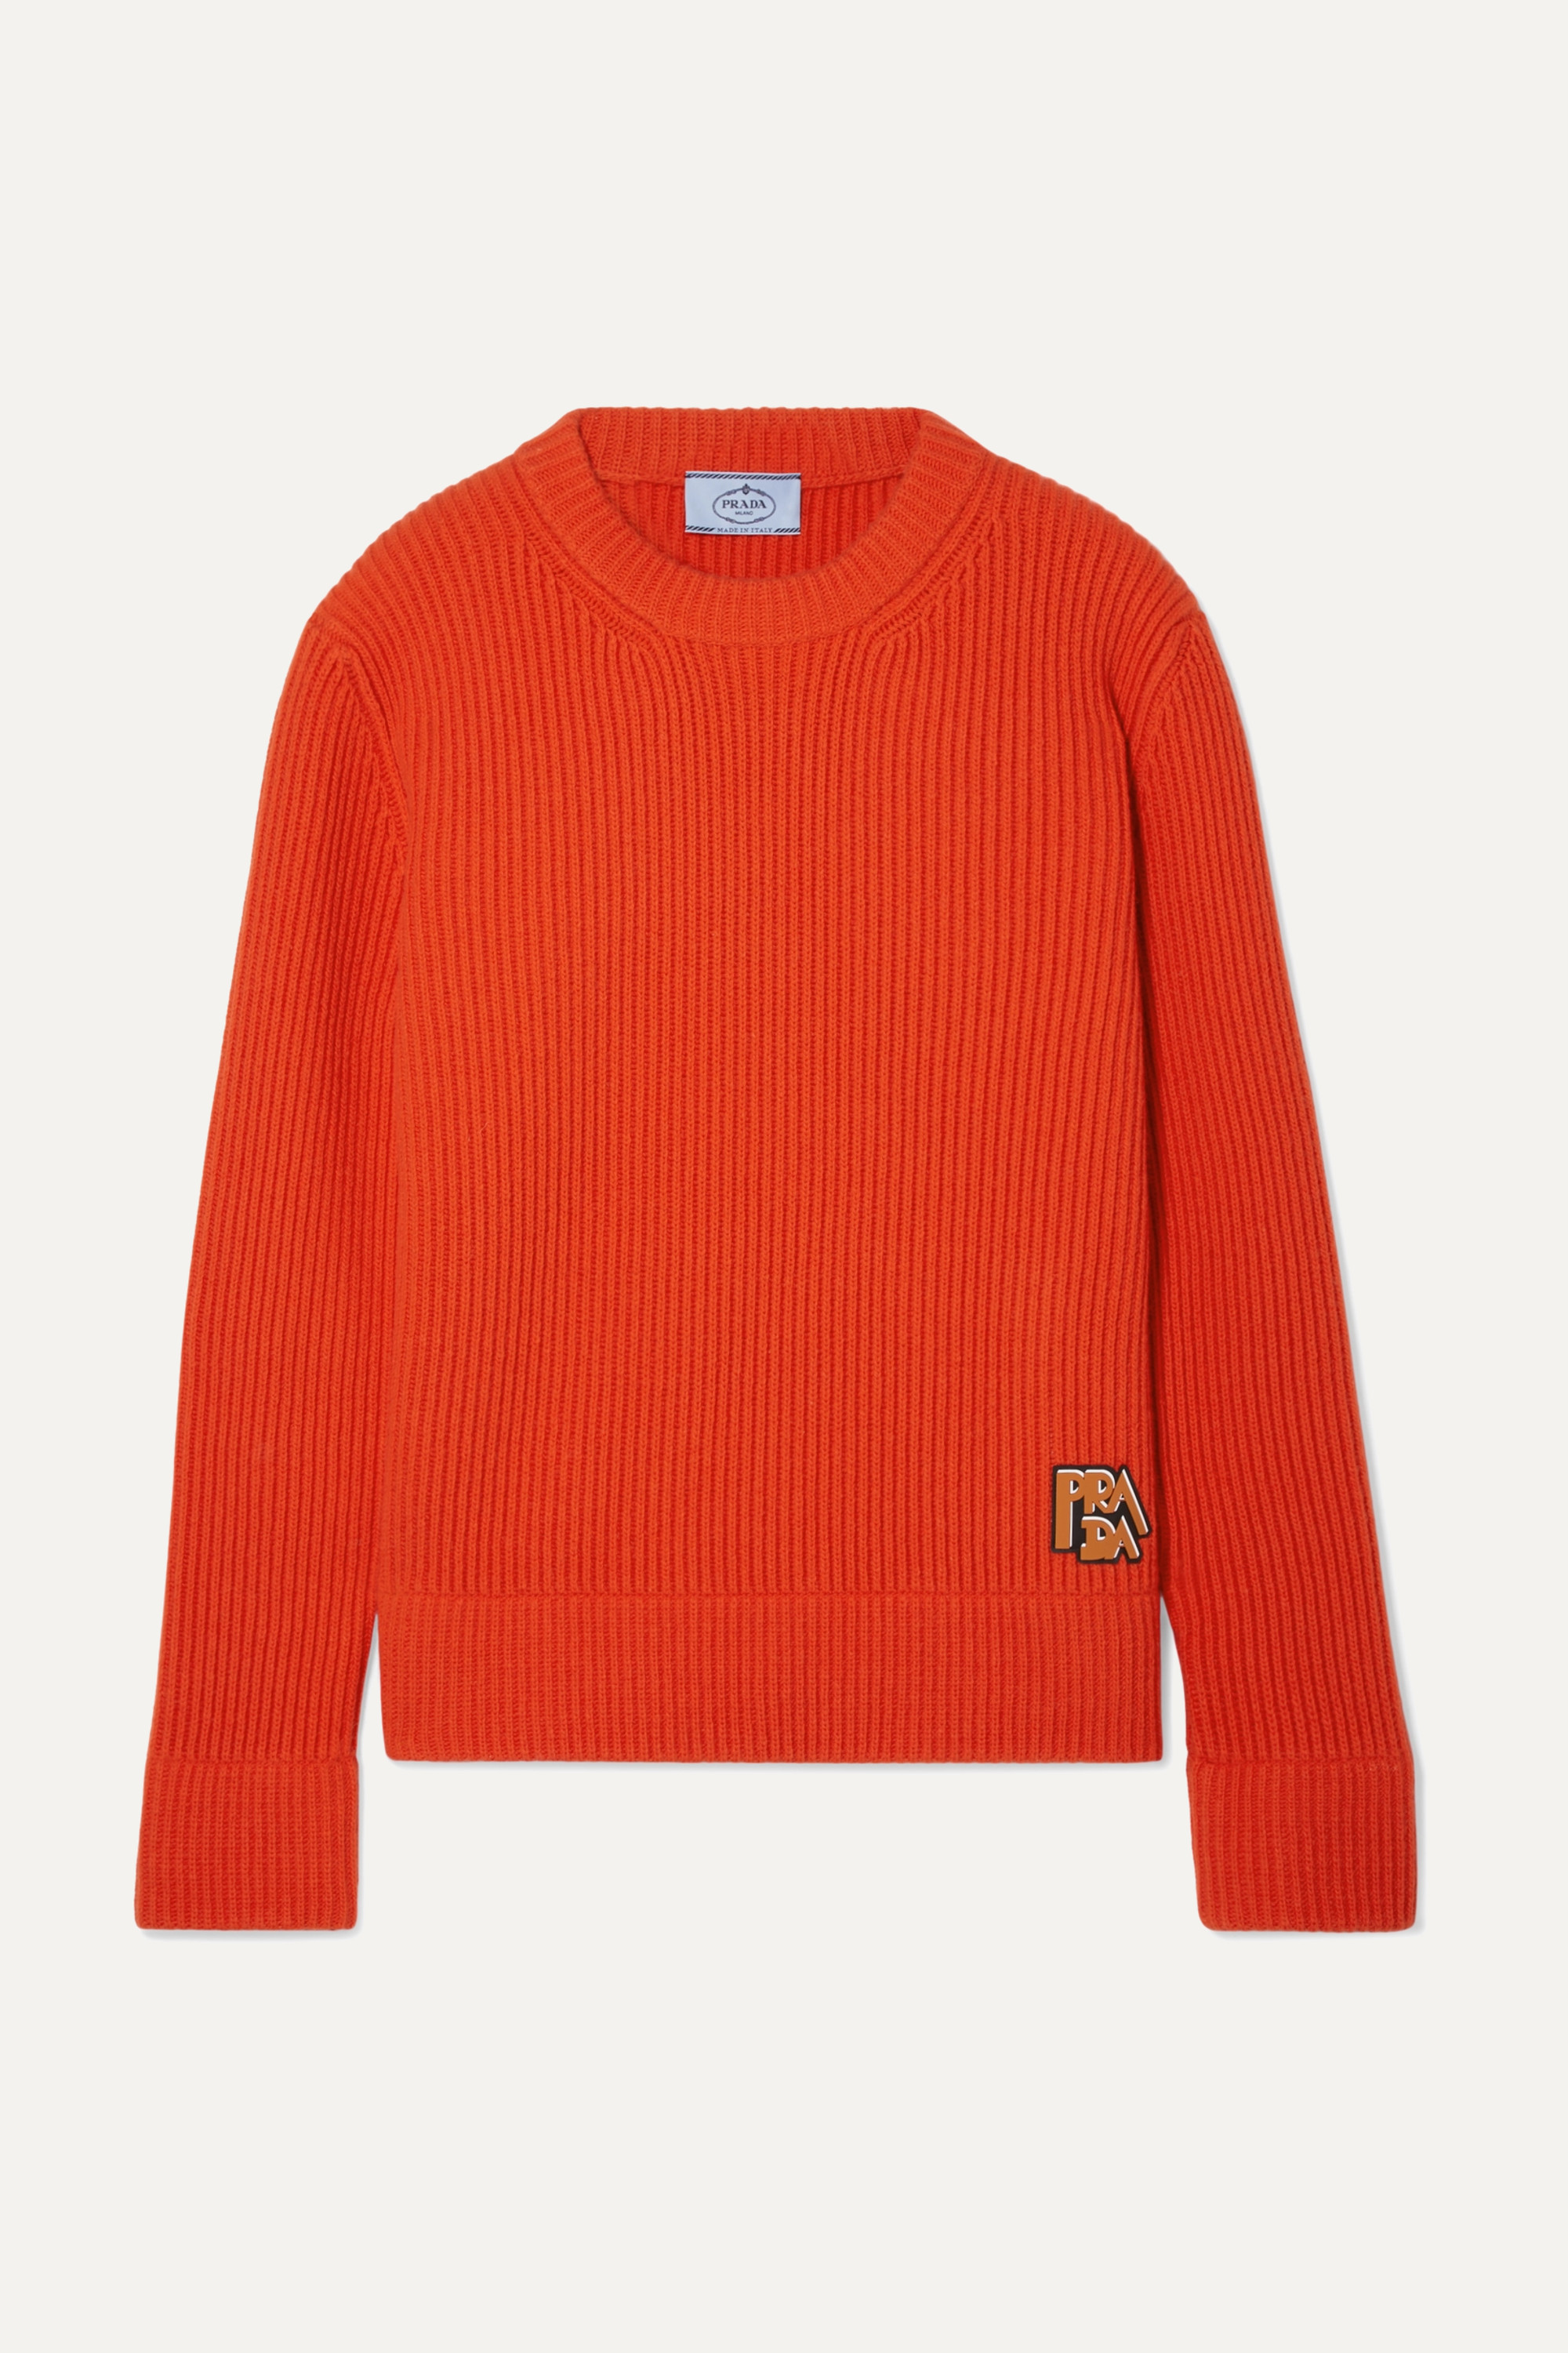 Prada Appliquéd ribbed wool and cashmere-blend sweater